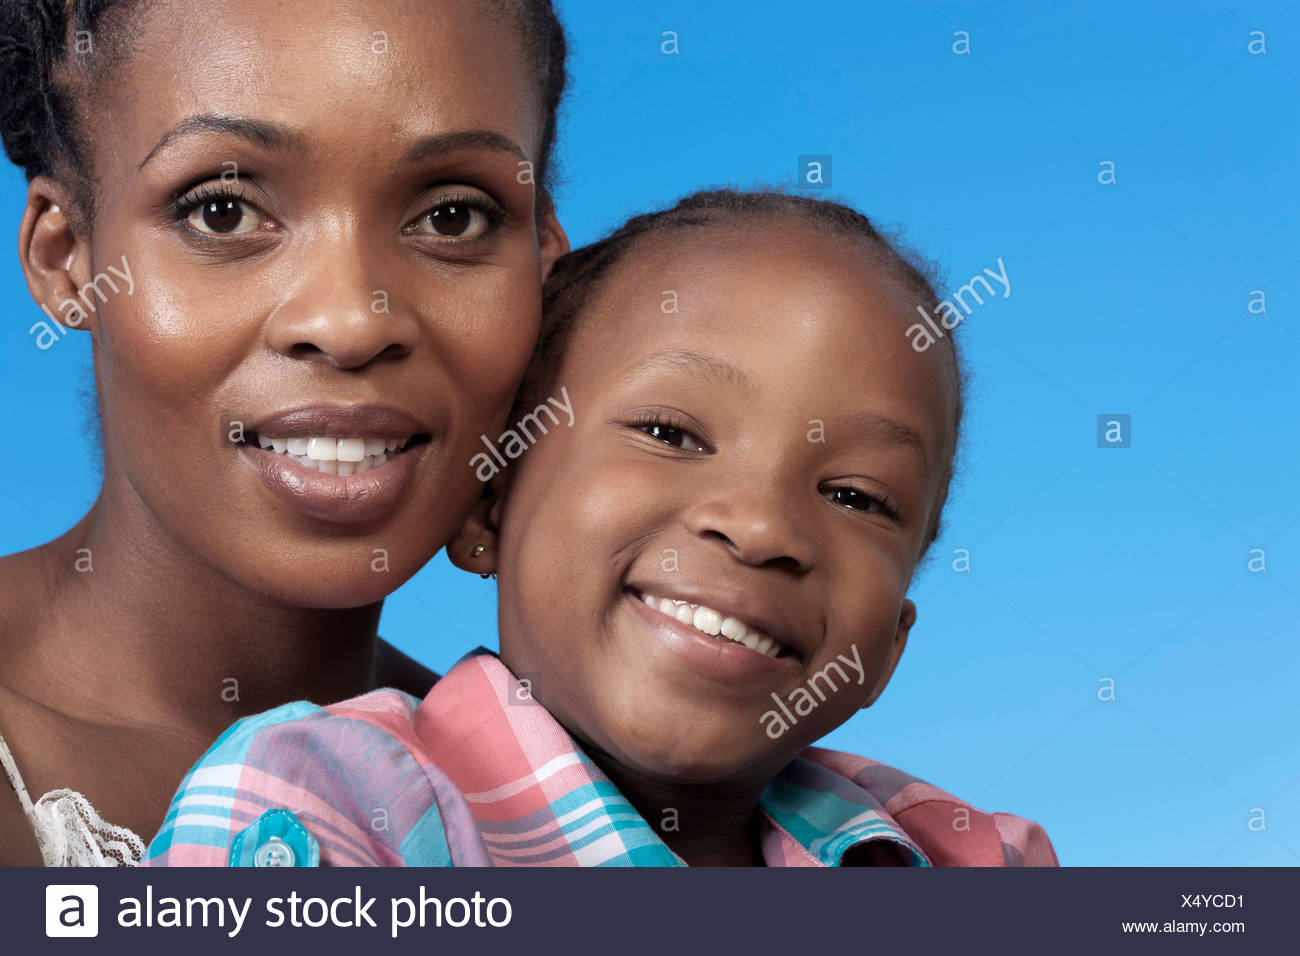 Closeup portrait of young African girl and her mother - Stock Image